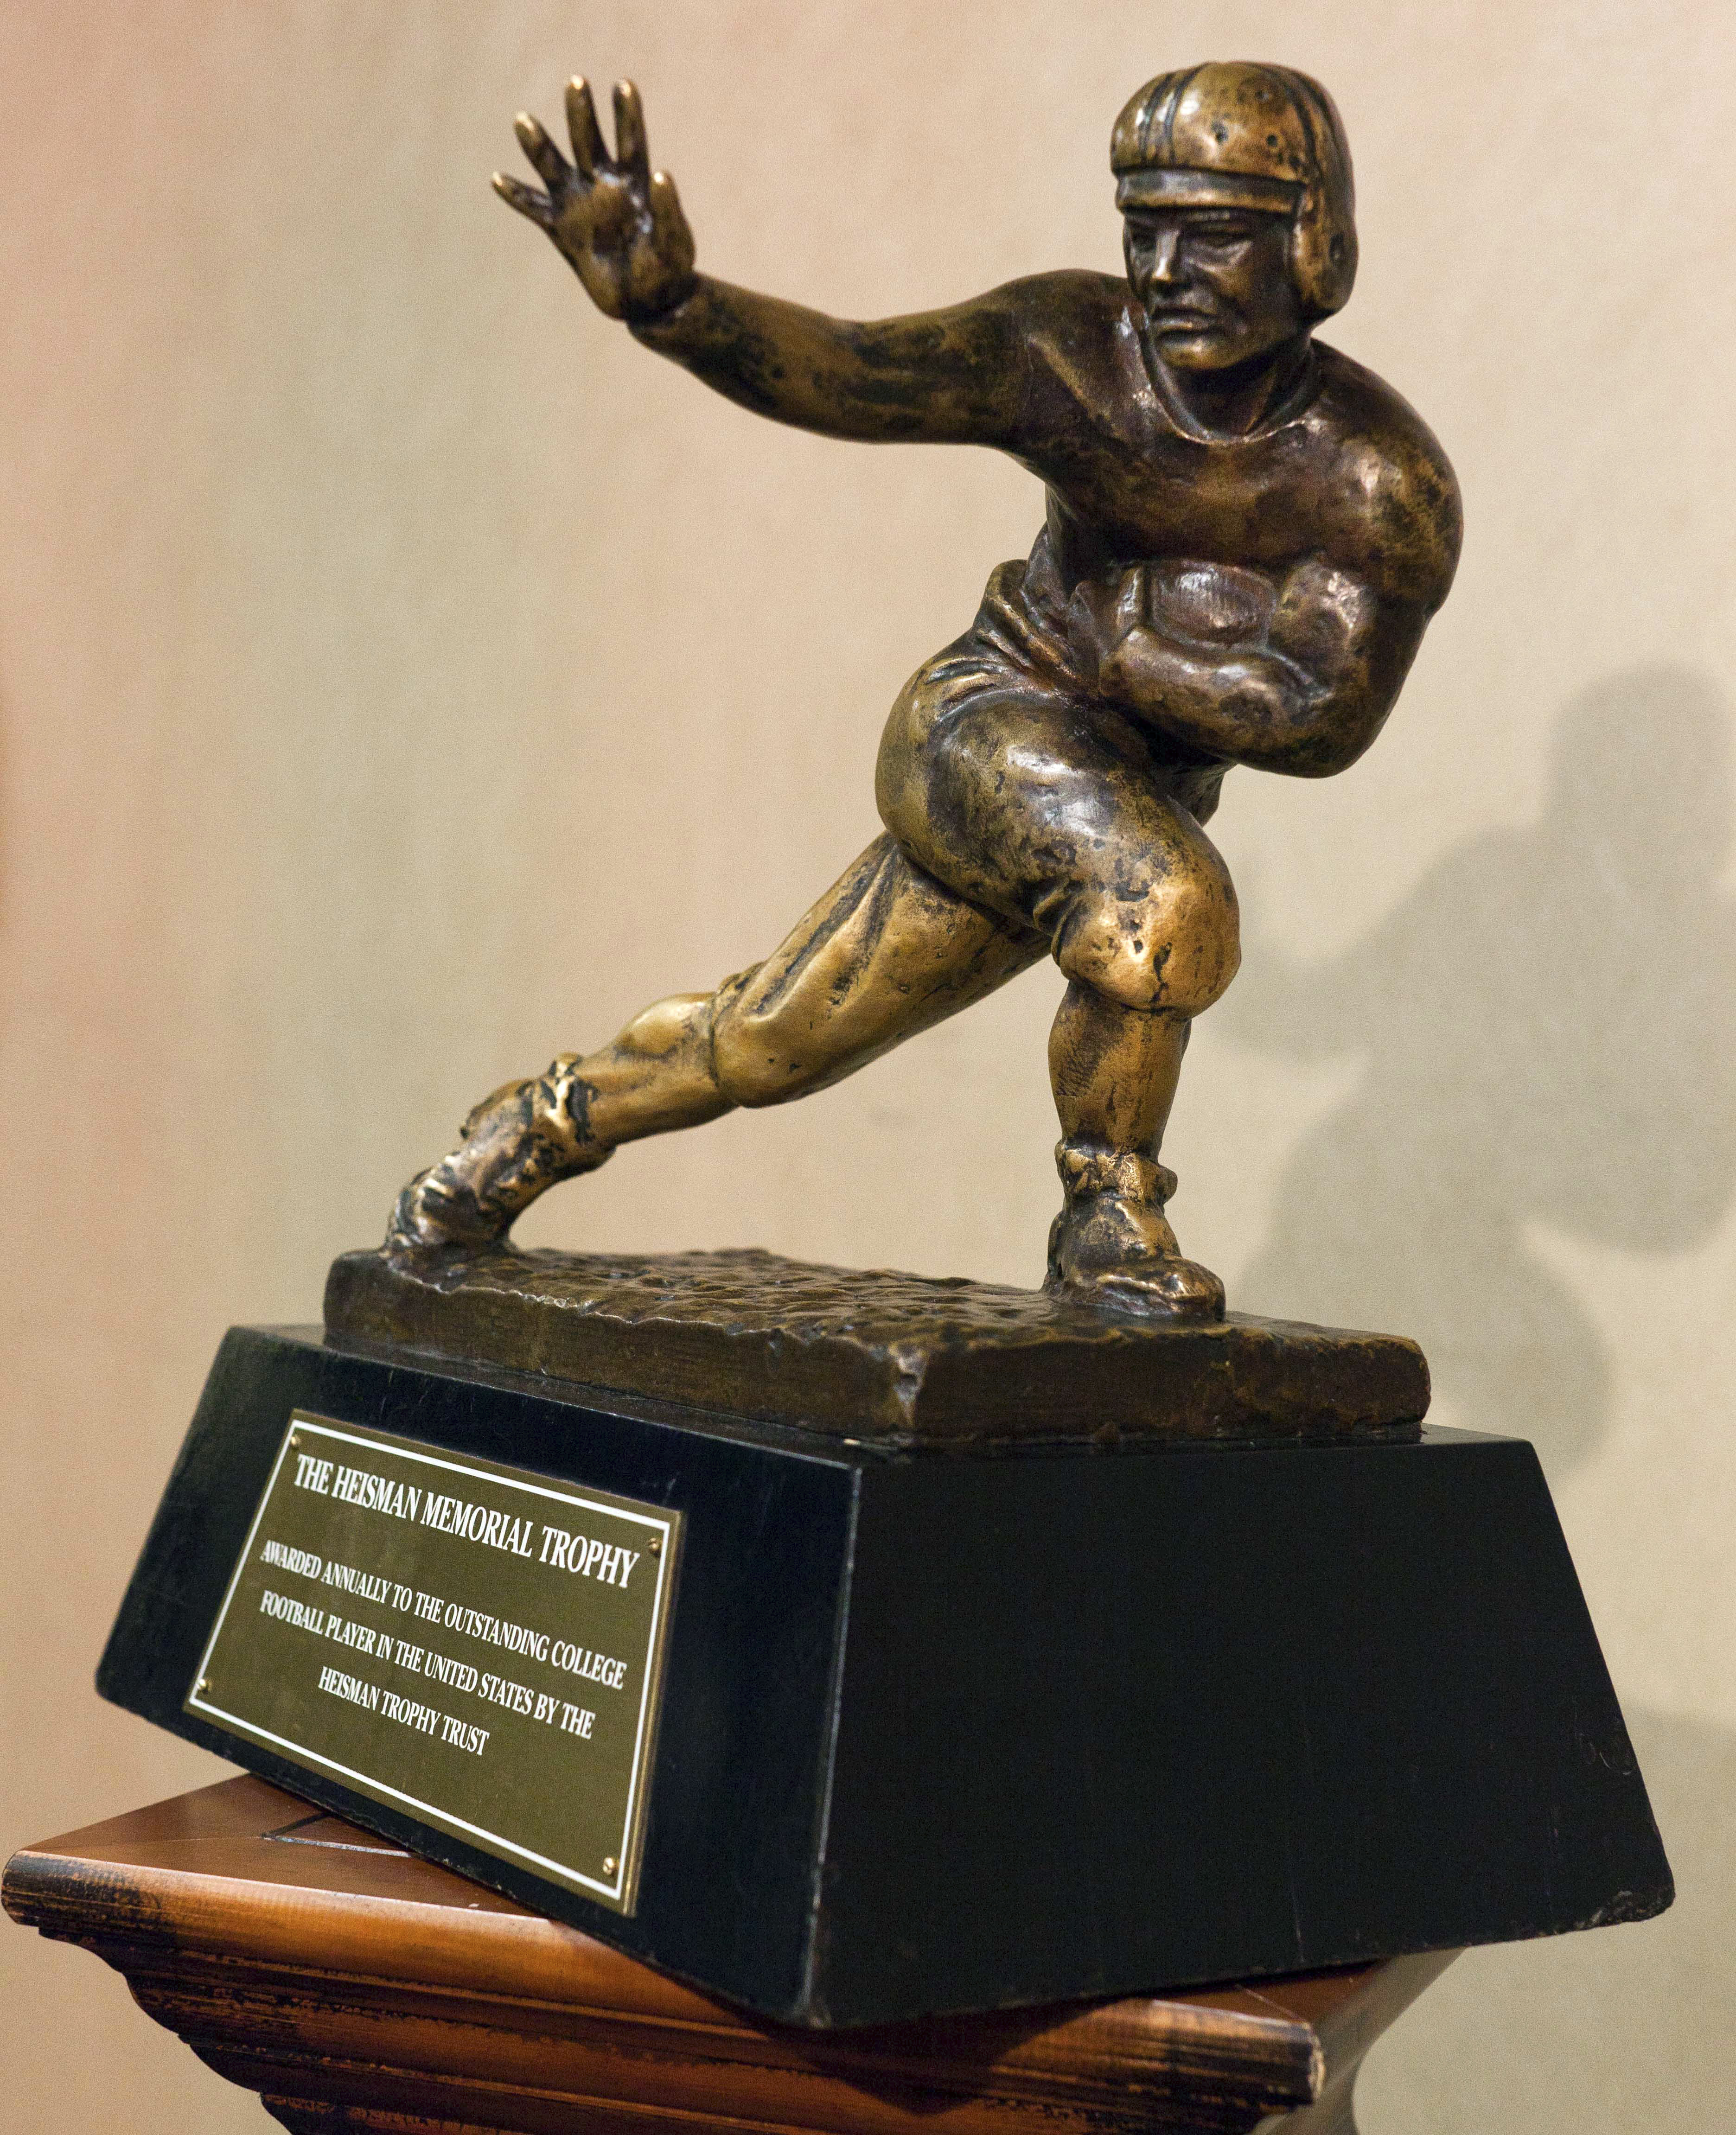 FILE - This is a Dec. 9, 2011 file photo showing the Heisman Trophy in New York. J.T. Barrett was big-time in prime time last week and now he has two more showcase games in the next three weeks to boost his Heisman Trophy hopes. The Ohio State quarterback